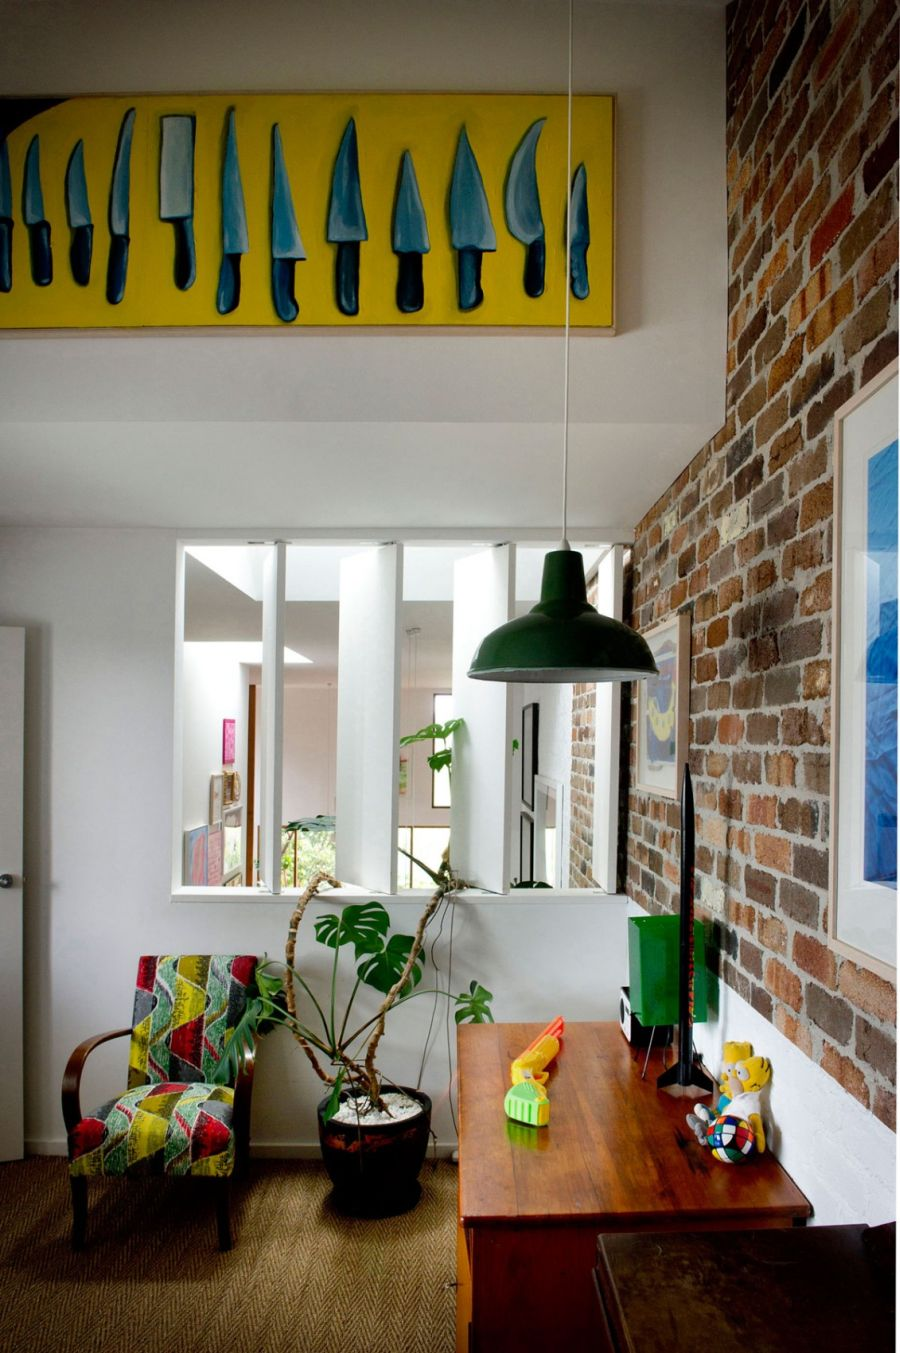 Eclectic sydney house presents colorful and quirky interiors Home interiors sconces